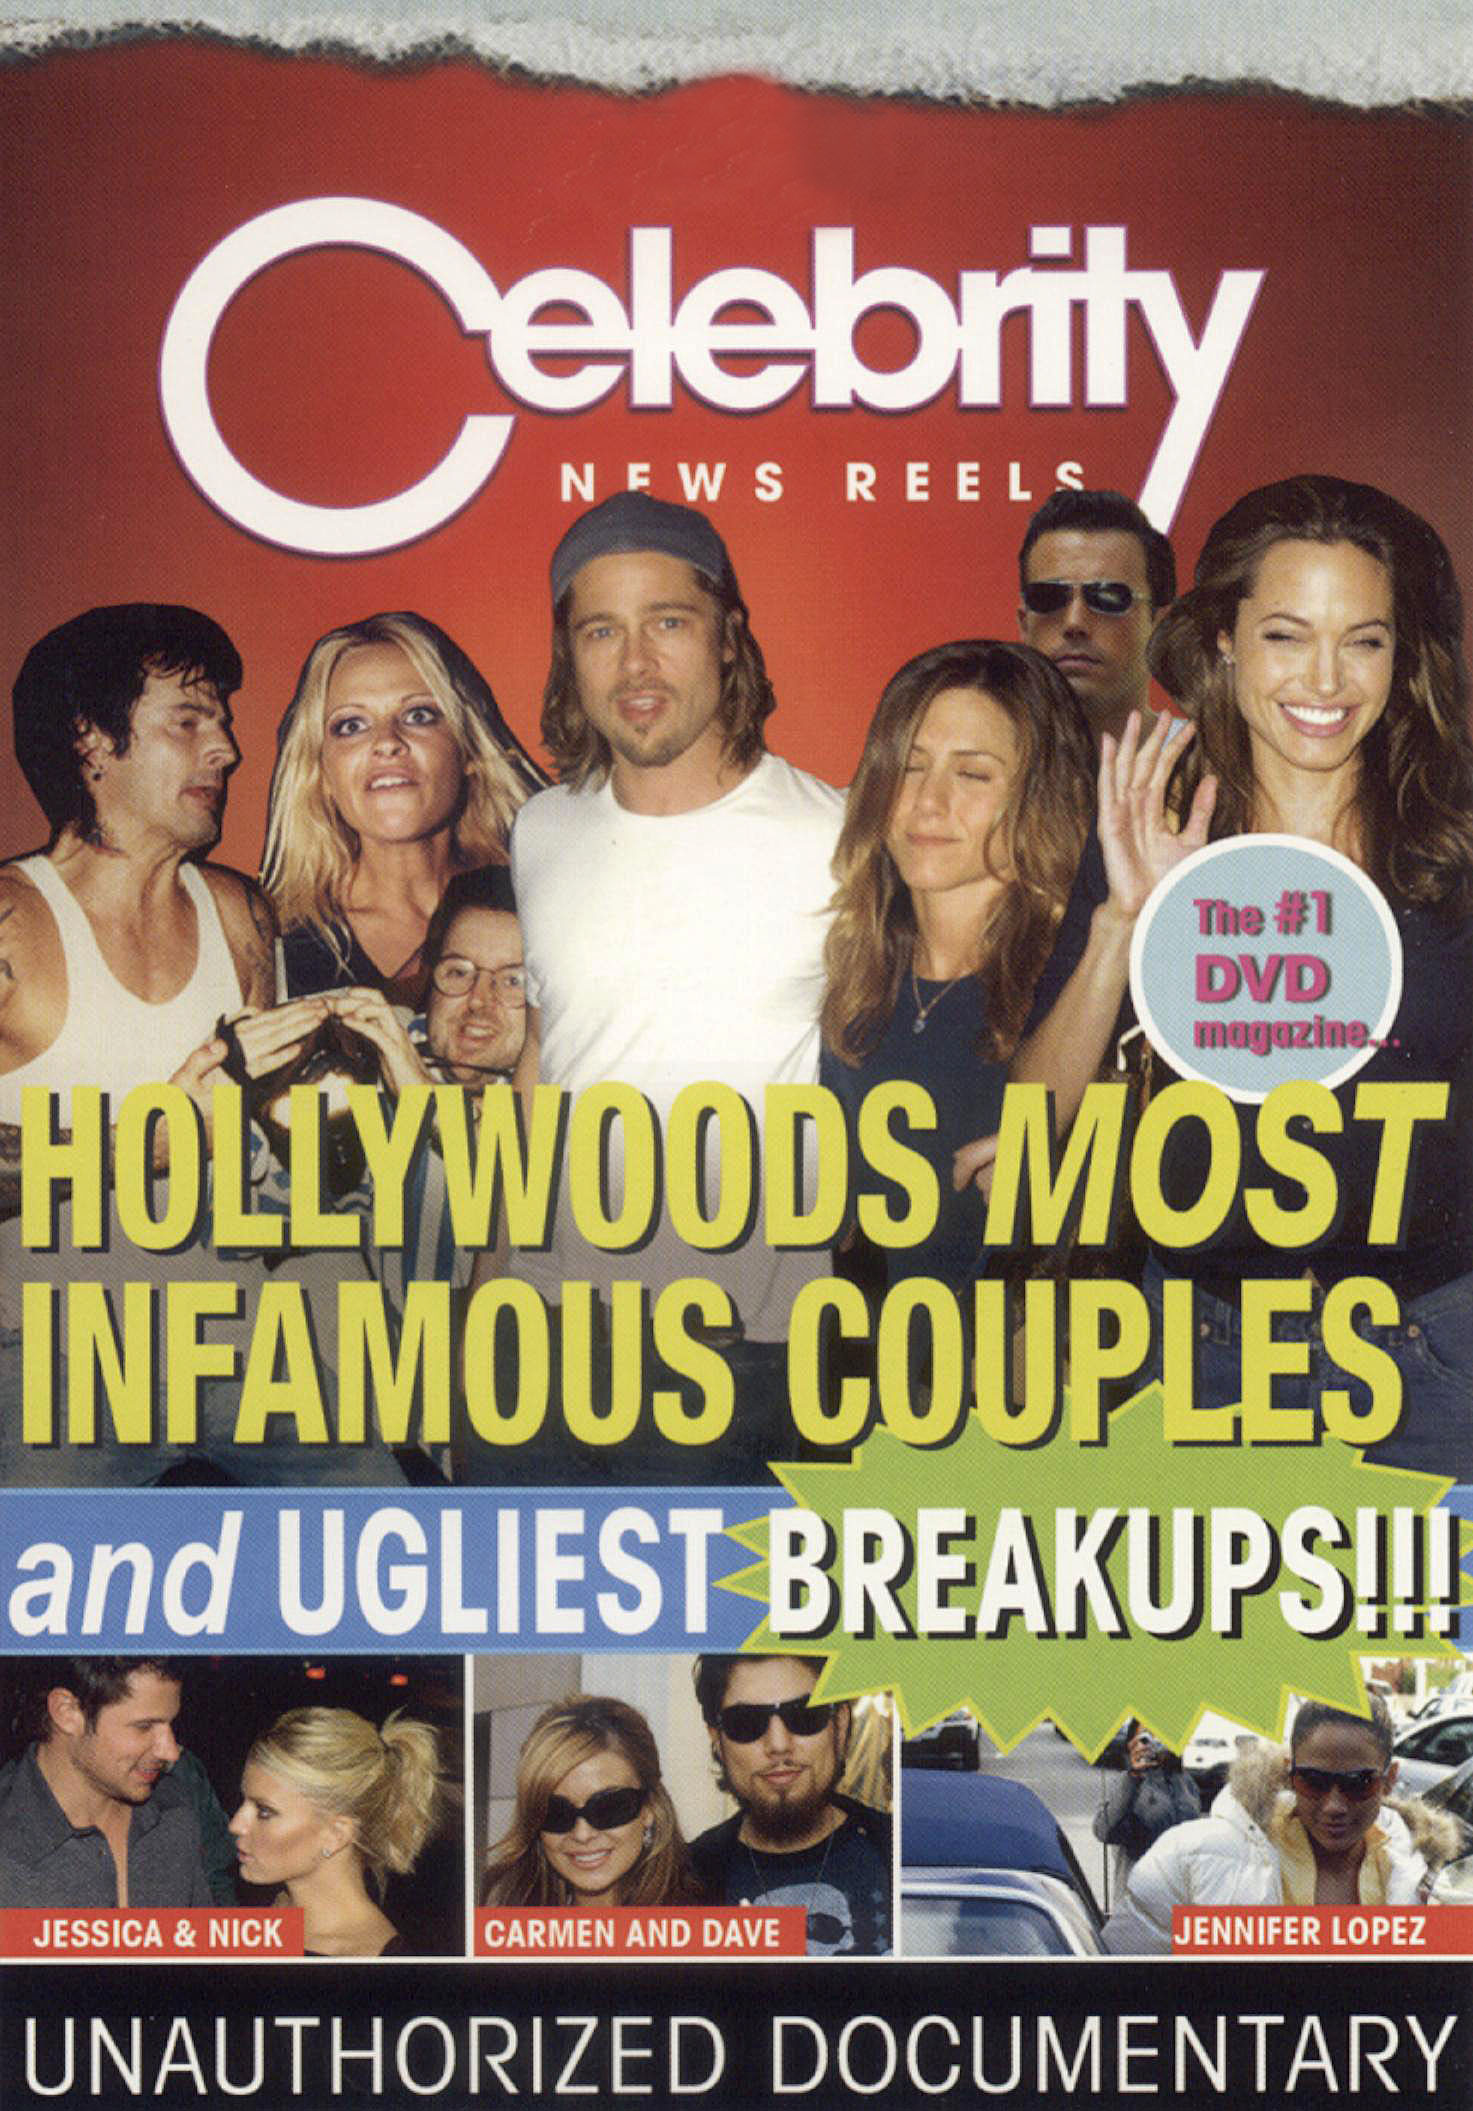 Celebrity News Reels: Hollywood's Most Infamous Couples and Ugliest Breakups